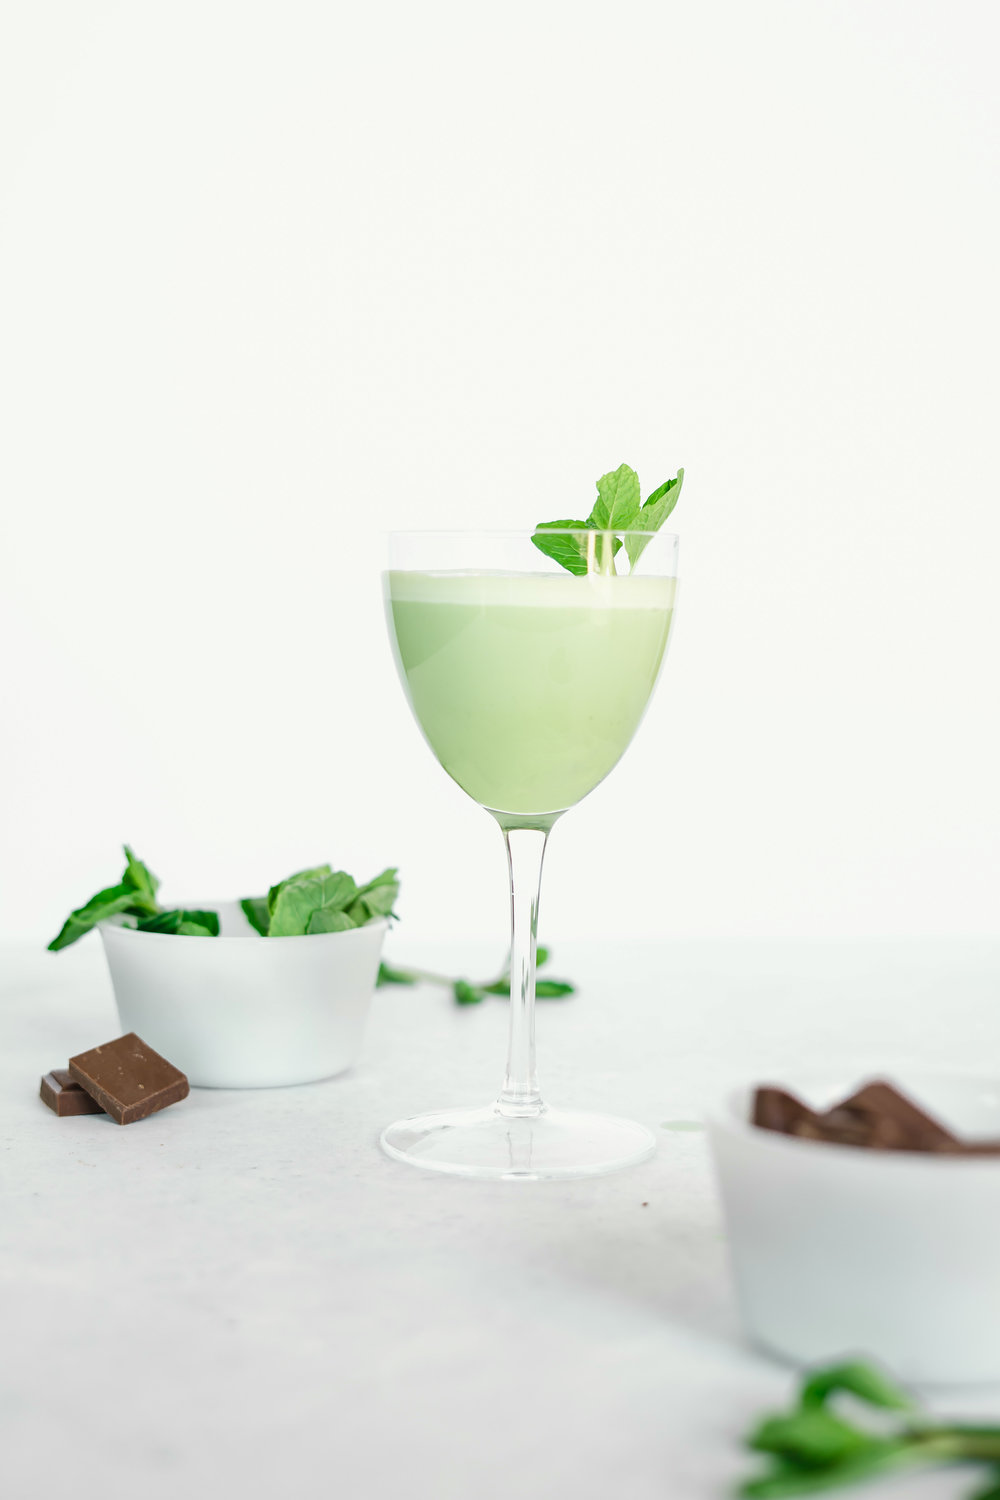 Matcha Grasshopper - 1 oz vodka (I was feeling festive and tried coconut vodka 🥥)1 oz creme de cacao1 oz peppermint liqueur1.5 oz half n half 1/2 tsp powdered matchaTo Make: Throw it all in a shaker with ice. Shake vigoursly because the Matcha wants to separate. Strain into your favorite coupe style glass. Garnish with mint plus a sprinkle of matcha or shavings of chocolate. Dealer's choice.